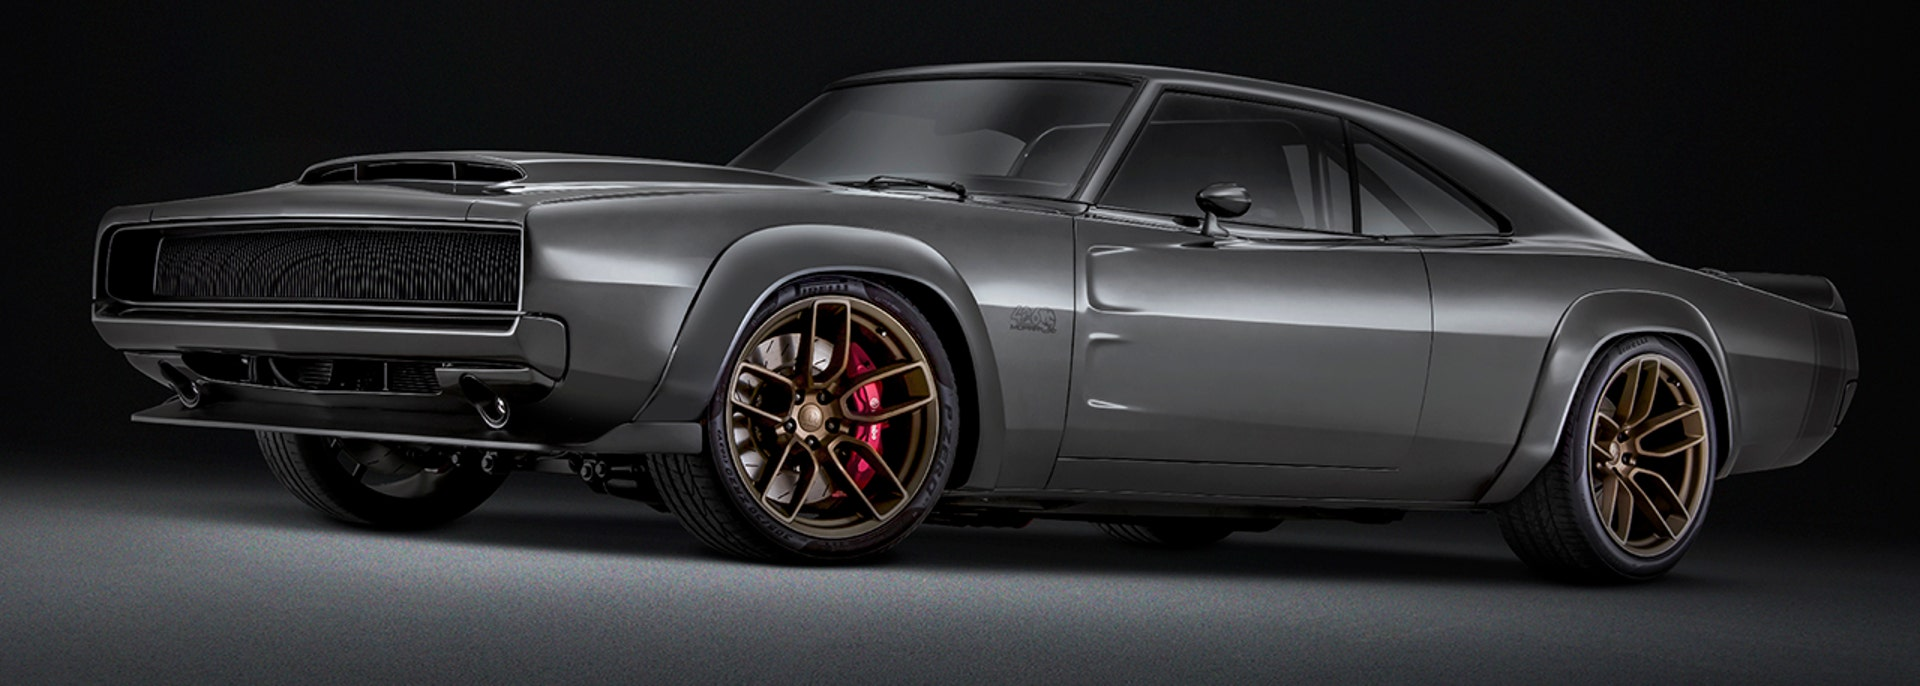 2018 Hellcat >> 1,000 hp Dodge 'Hellephant' V8 is ready to resurrect your classic car | Fox News